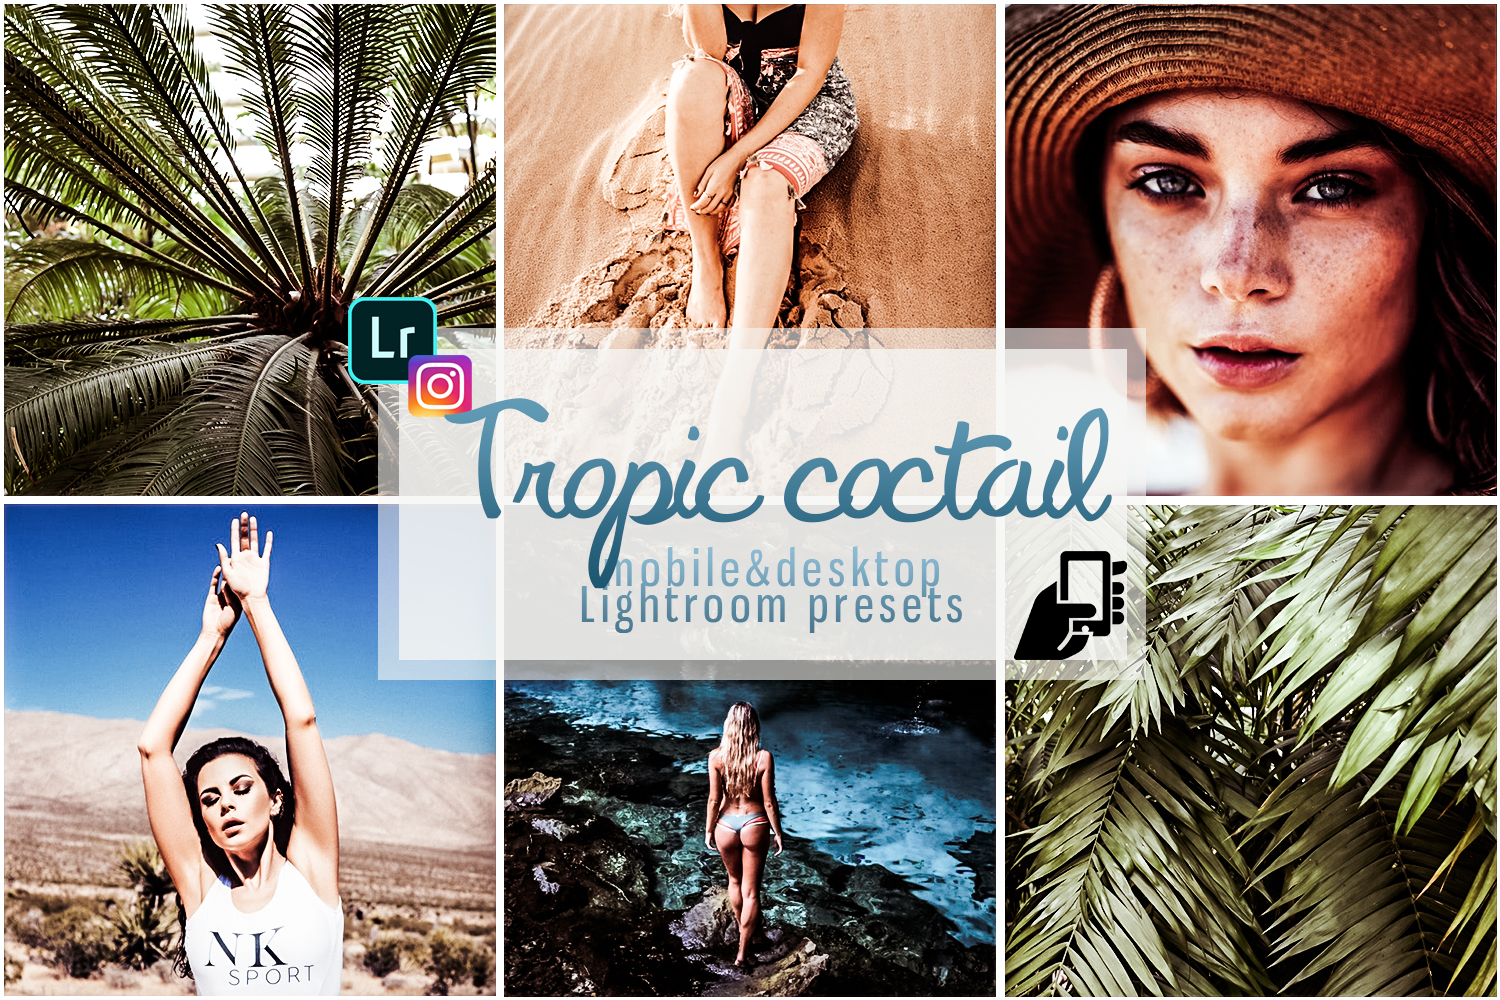 Tropical coctail presets for lightroom mobile and pc example image 1